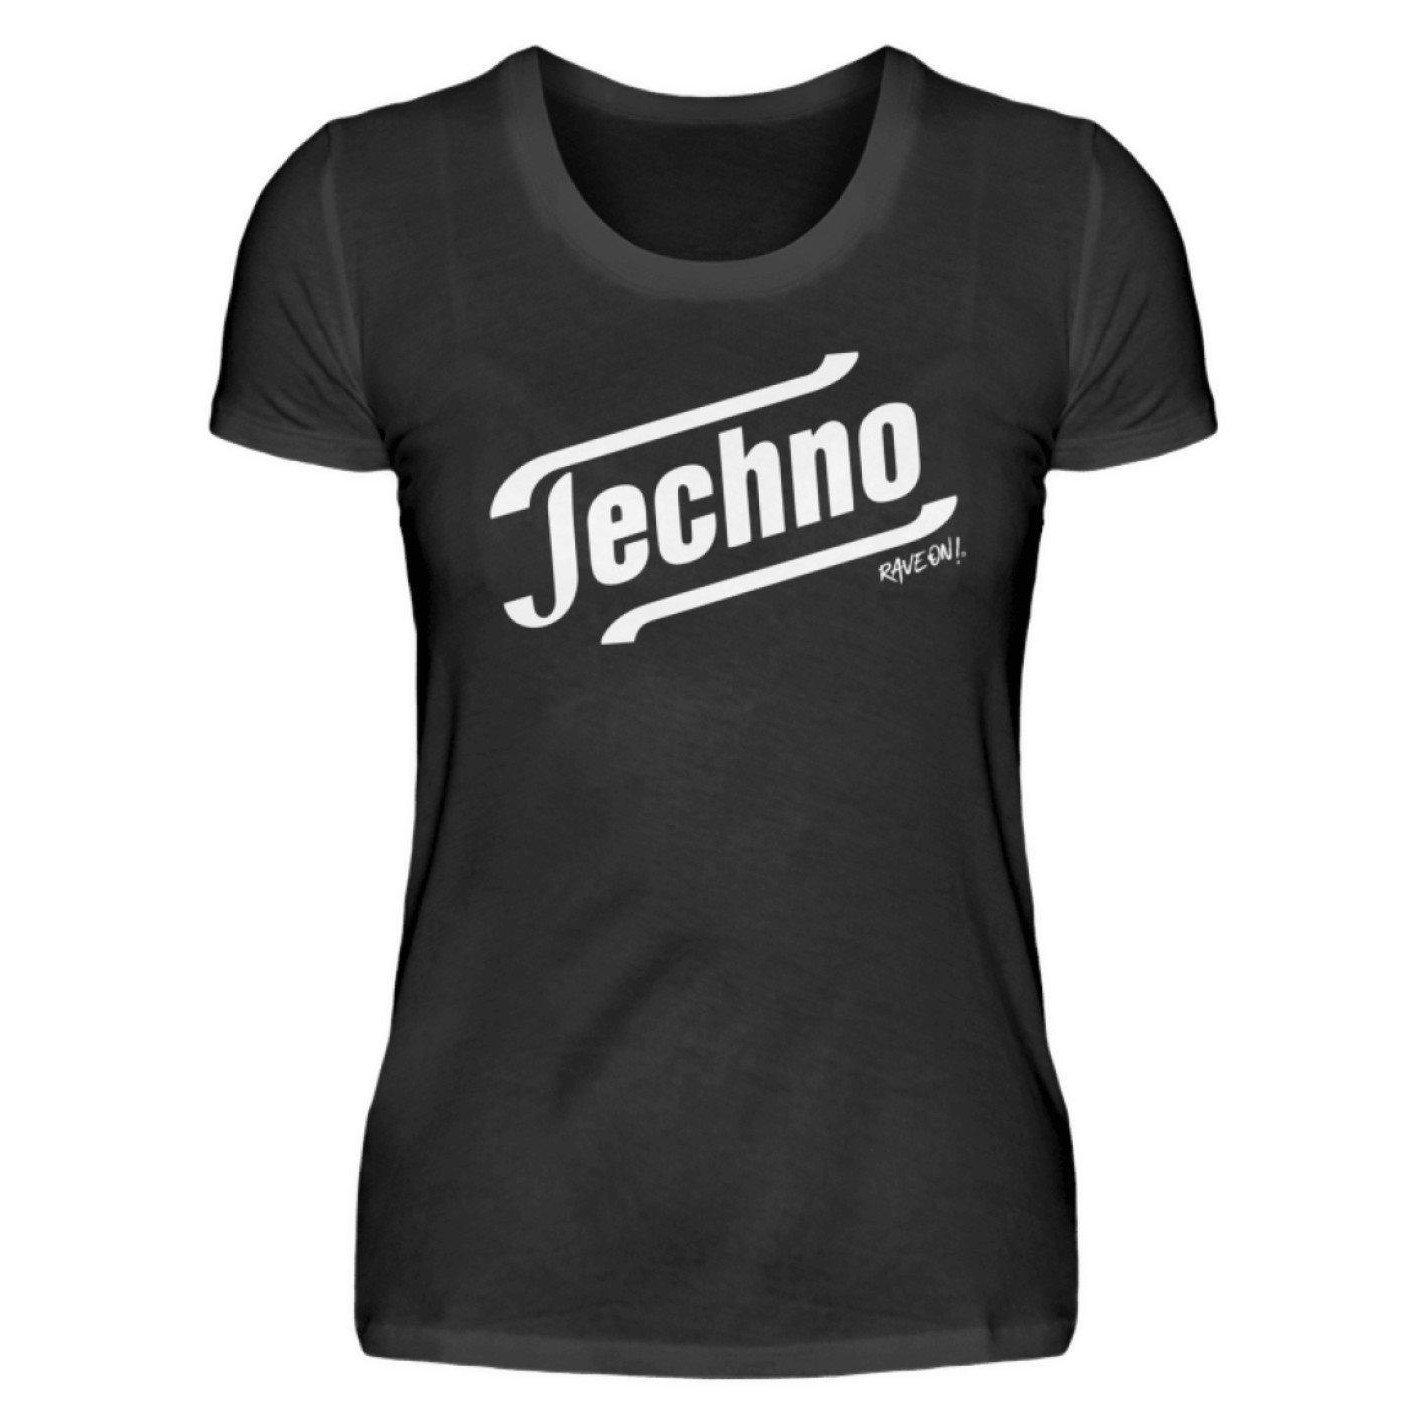 Techno - Tempo Rave On!® T-Shirt - Damenshirt-Damen Basic T-Shirt-Schwarz-S-Rave-On! I www.rave-on.shop I Deine Rave & Techno Szene Shop I apparel, brand, Design - Techno - Tempo Rave On!® T-Shirt, font, Funny, i heart raves, meme, music, on, On!®, rave, rave apparel, rave clothes, rave clothing, rave fashion, rave gear, rave on, Rave On!®, rave shop, rave t shirt, rave wear, raver, techno, techno apparel, Tempo, ® - Sexy Festival Streetwear , Clubwear & Raver Style